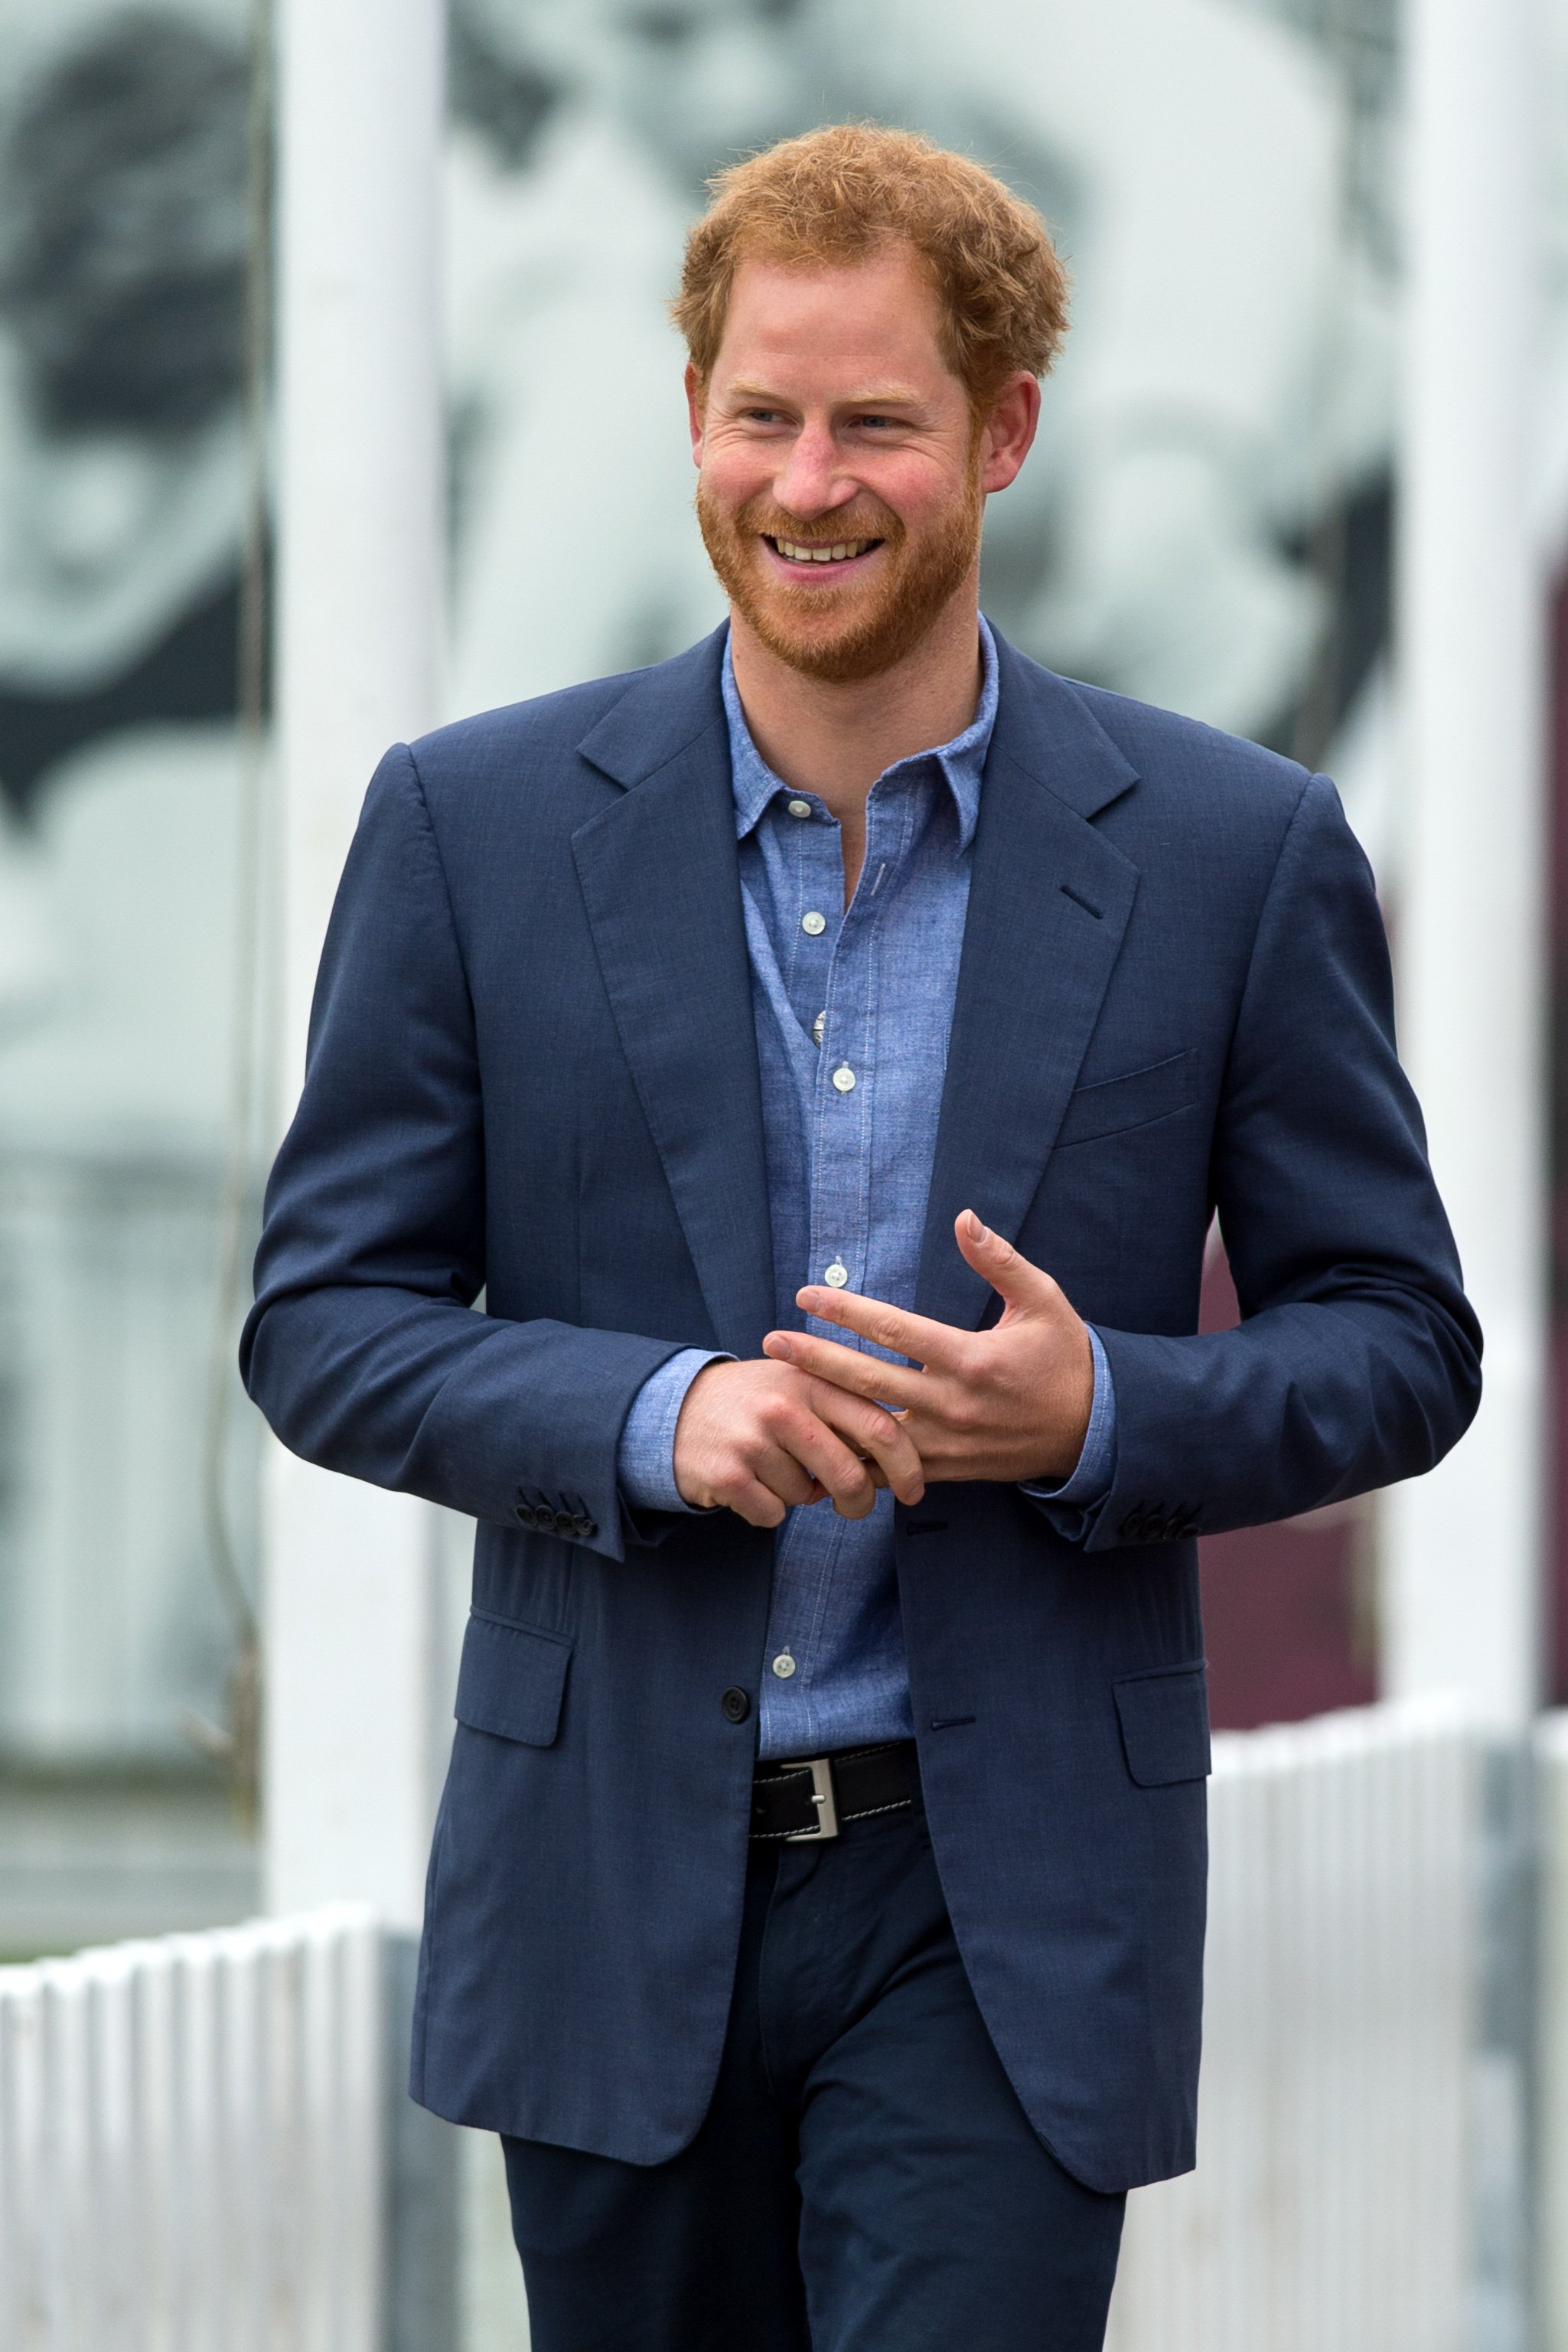 Image Credits: Getty Images / Ben A. Pruchnie | Prince Harry takes part in a training session during a celebration for the expansion of Coach Core at Lord's Cricket Ground on October 7, 2016 in London, England.